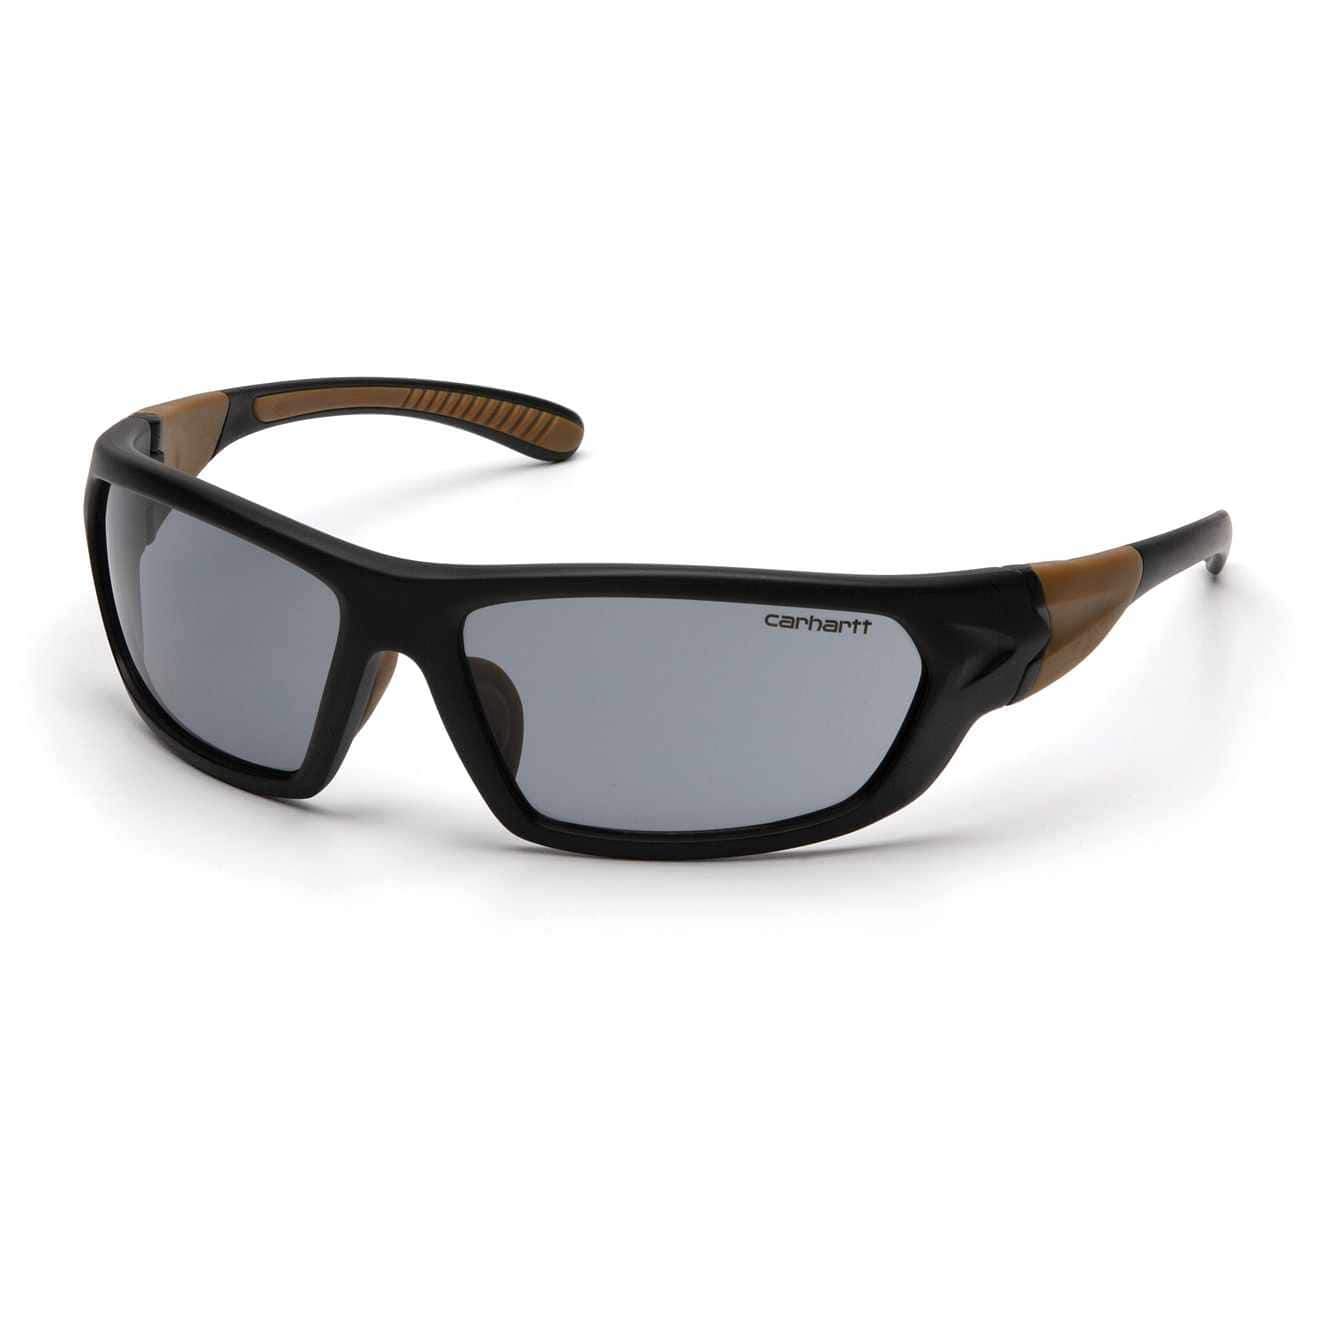 Picture of Carbondale Anti-Fog Safety Glasses in Gray